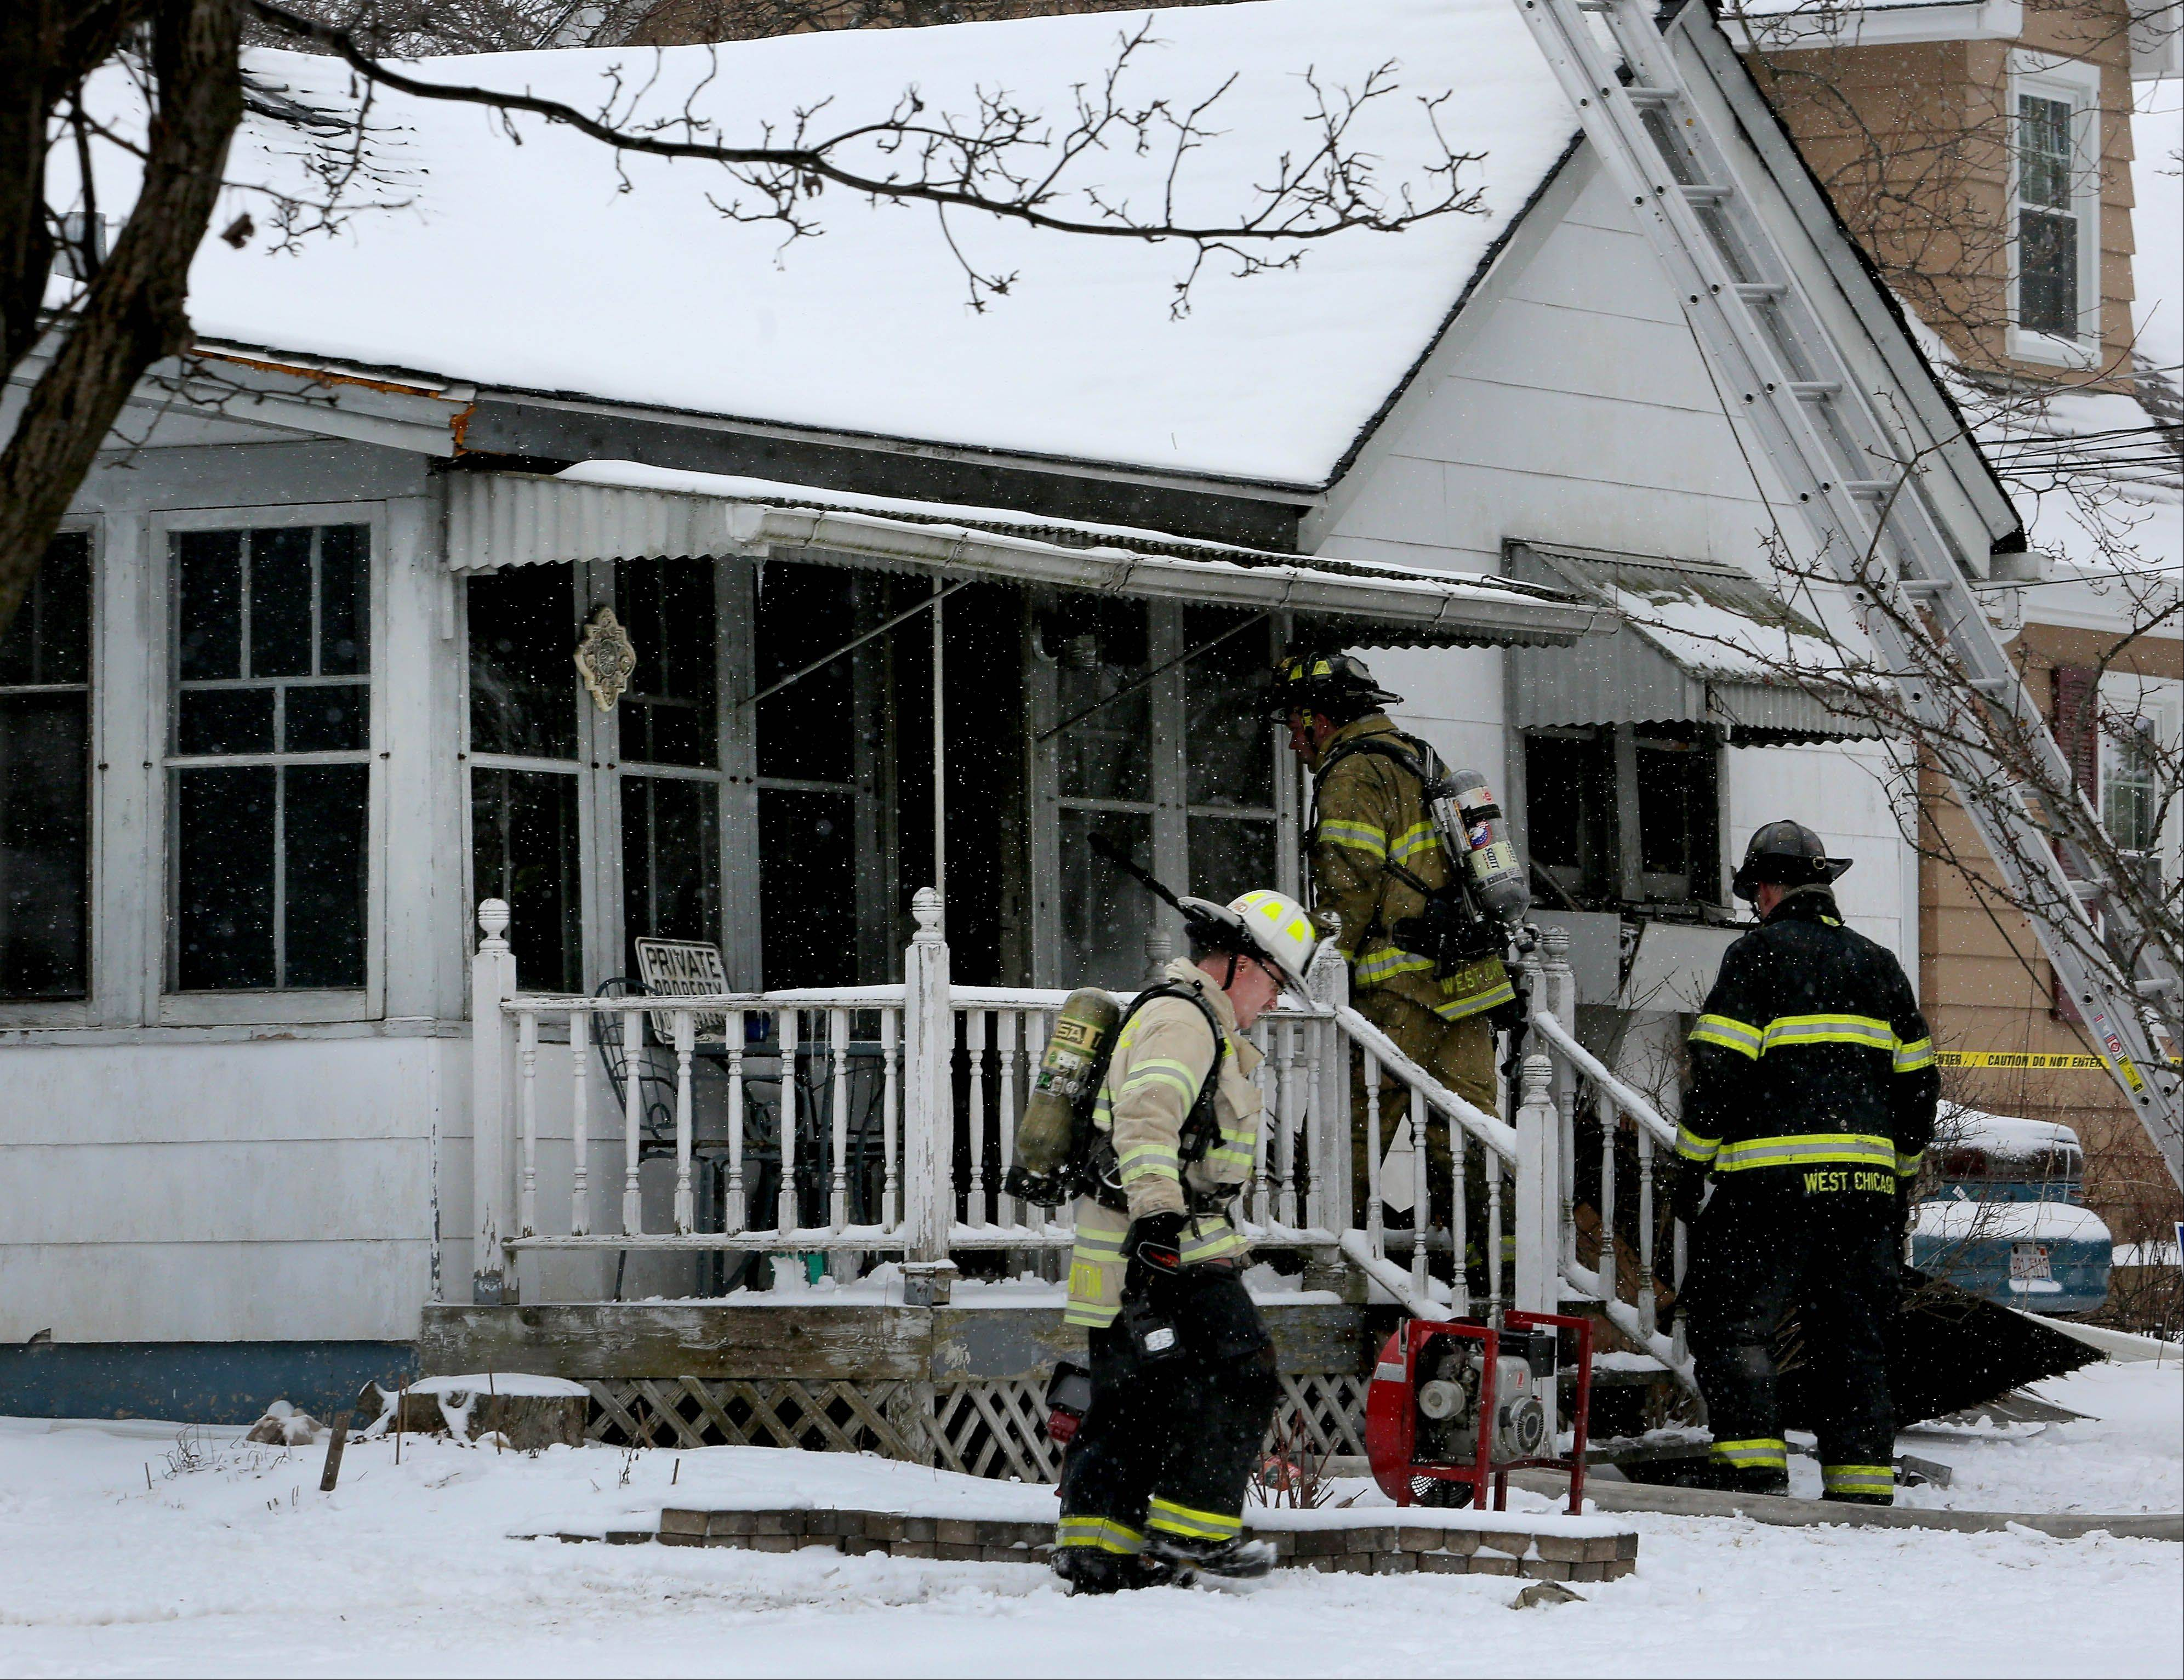 A woman died in a fire Friday morning at a single-family home in West Chicago.